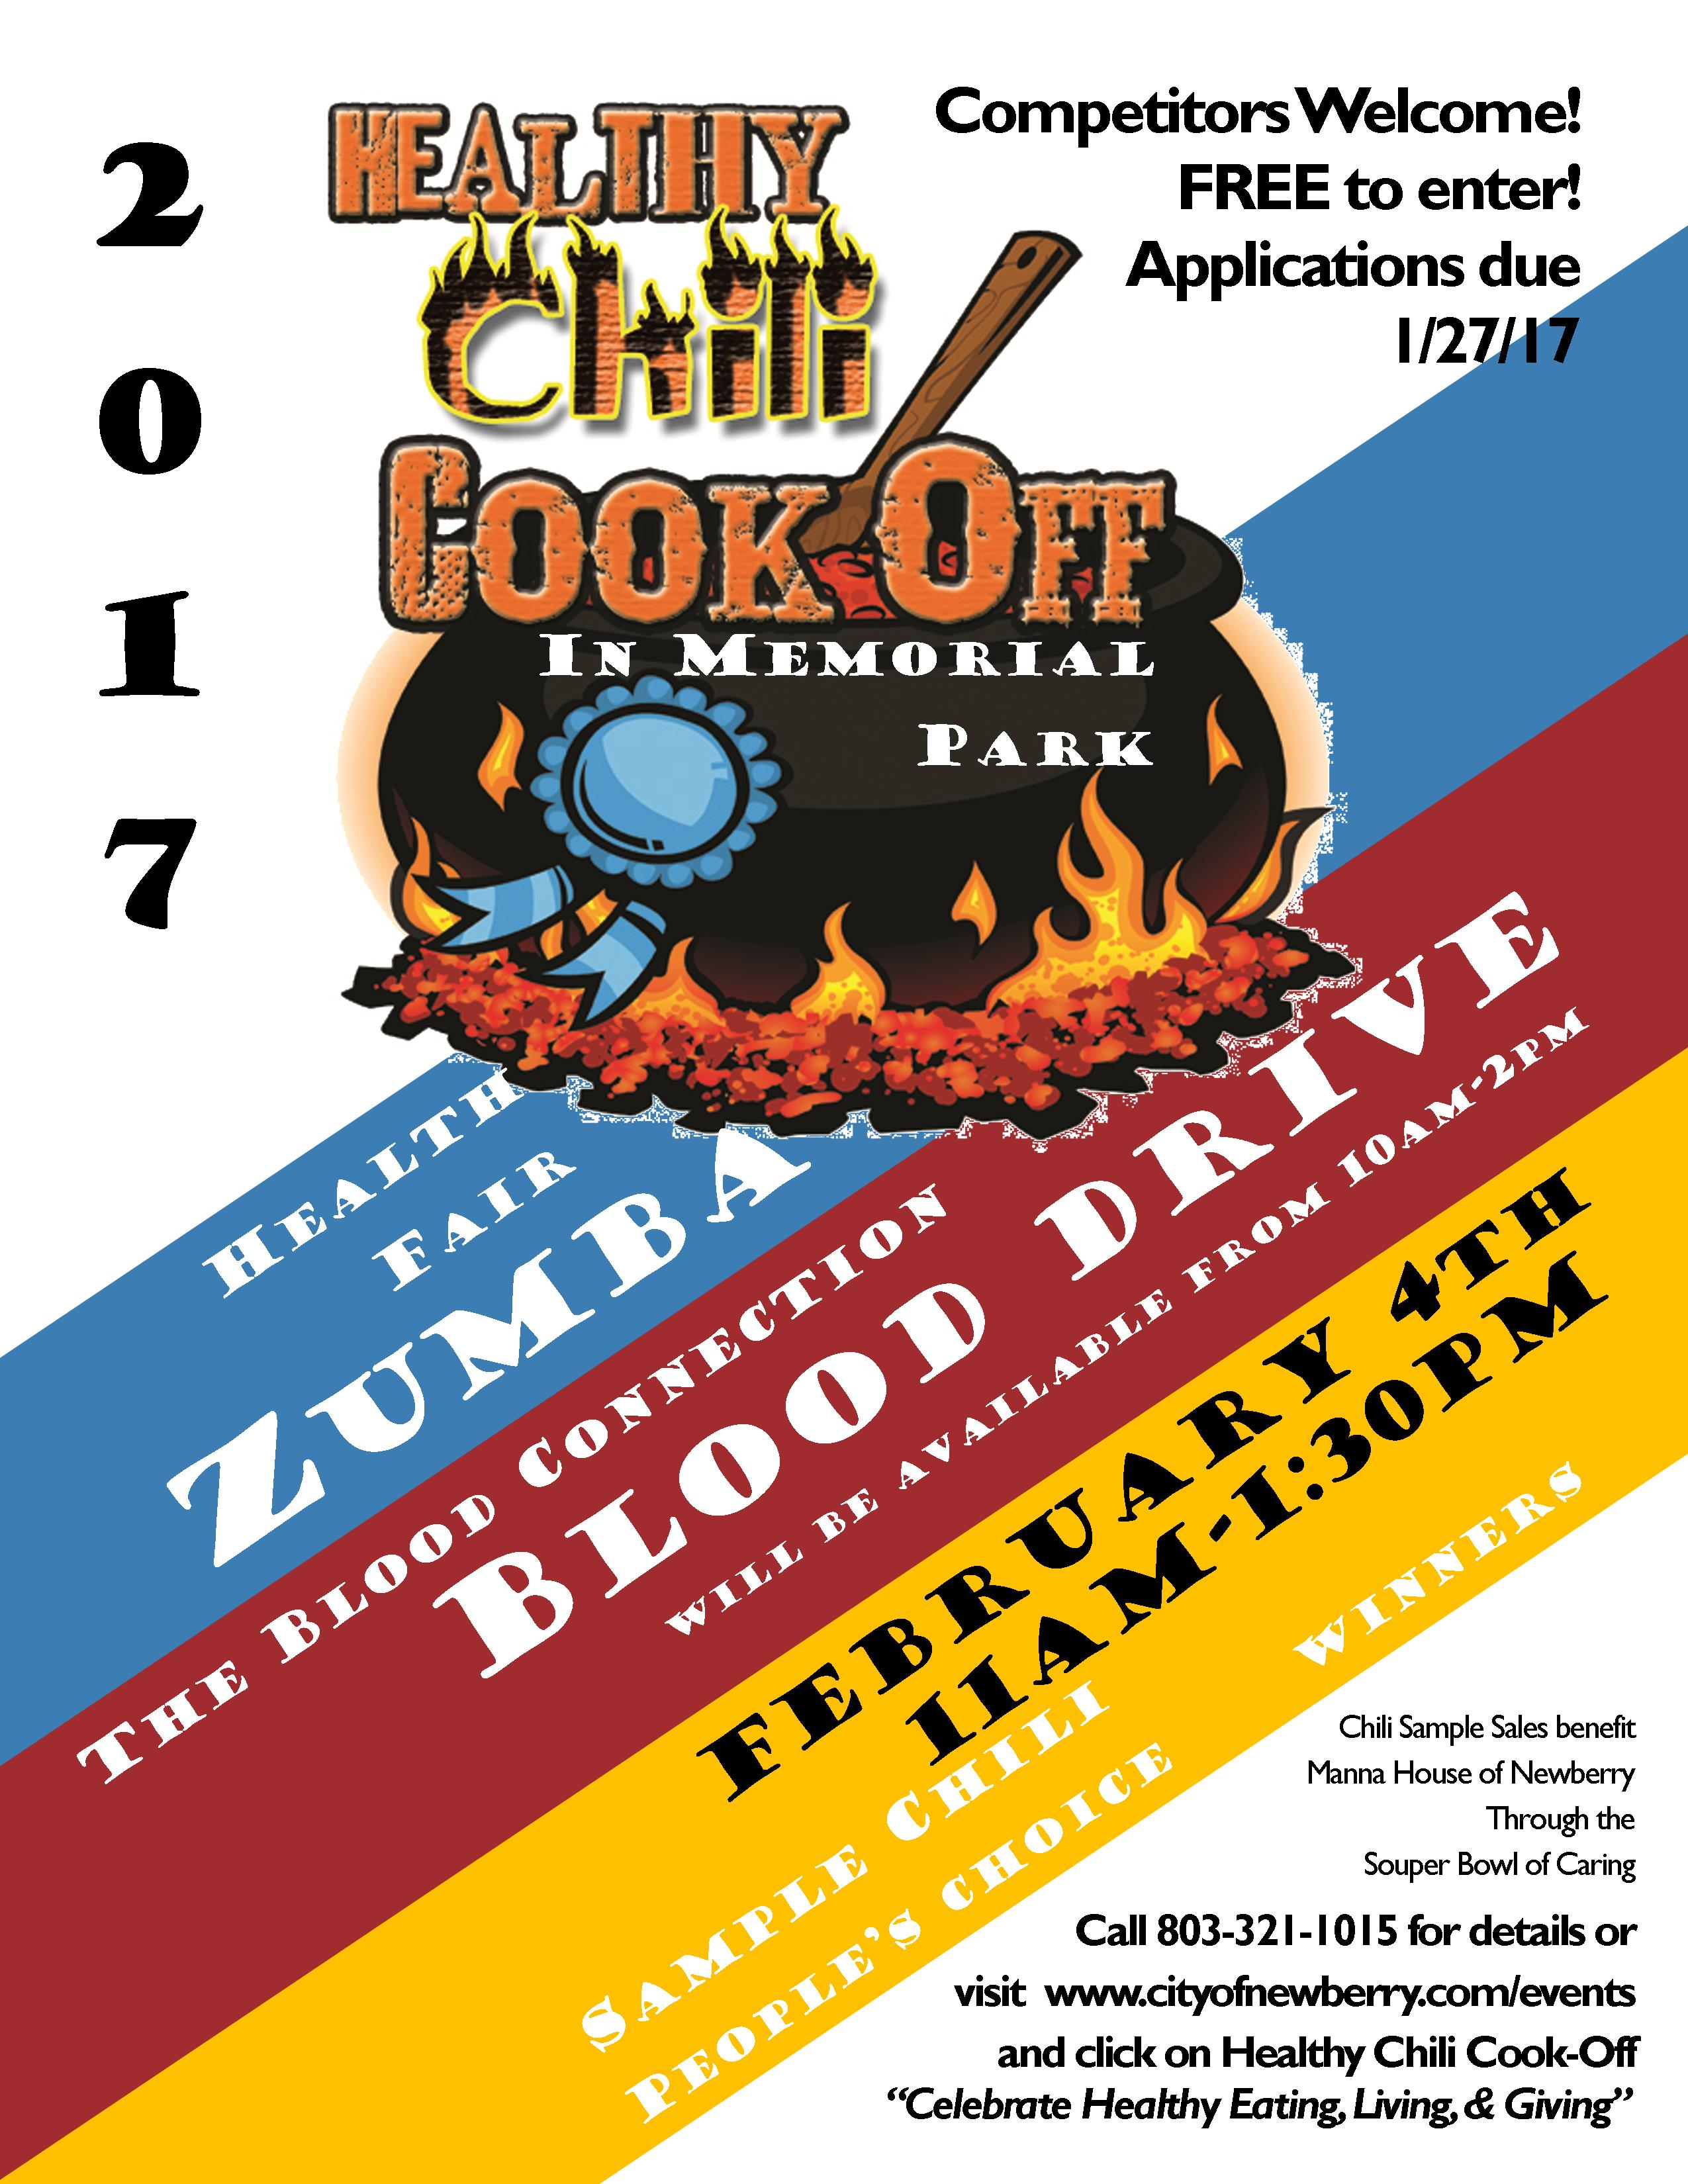 Healthy chili cook off if youd like details about our rules and regulations please follow this link healthy chili cook off rules and regulations xflitez Choice Image